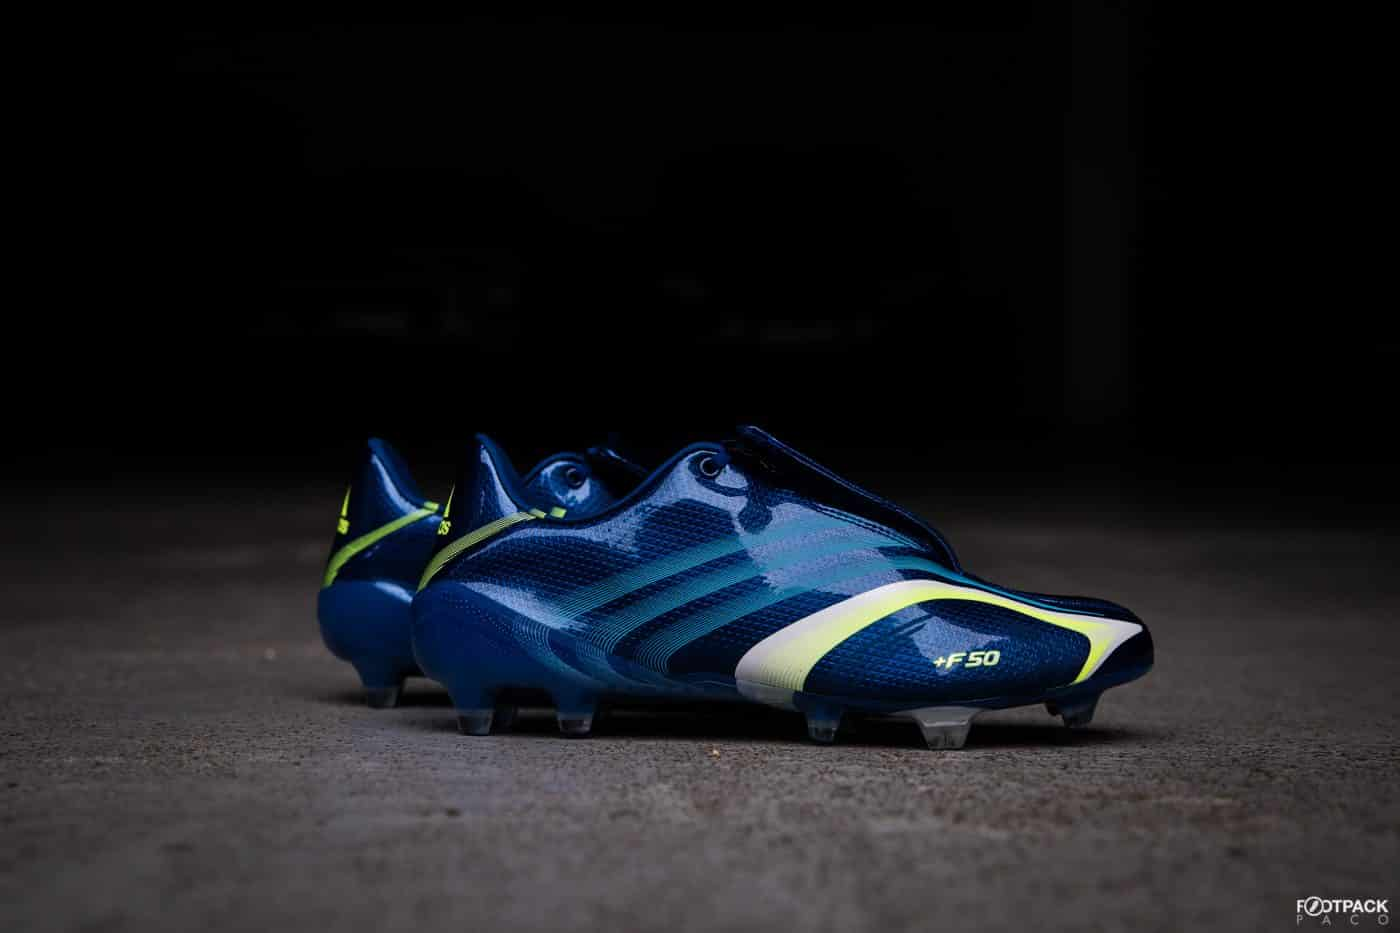 adidas-X50.6-reedition-2019-adidas-F50.6-tunit-2006-footpack-6